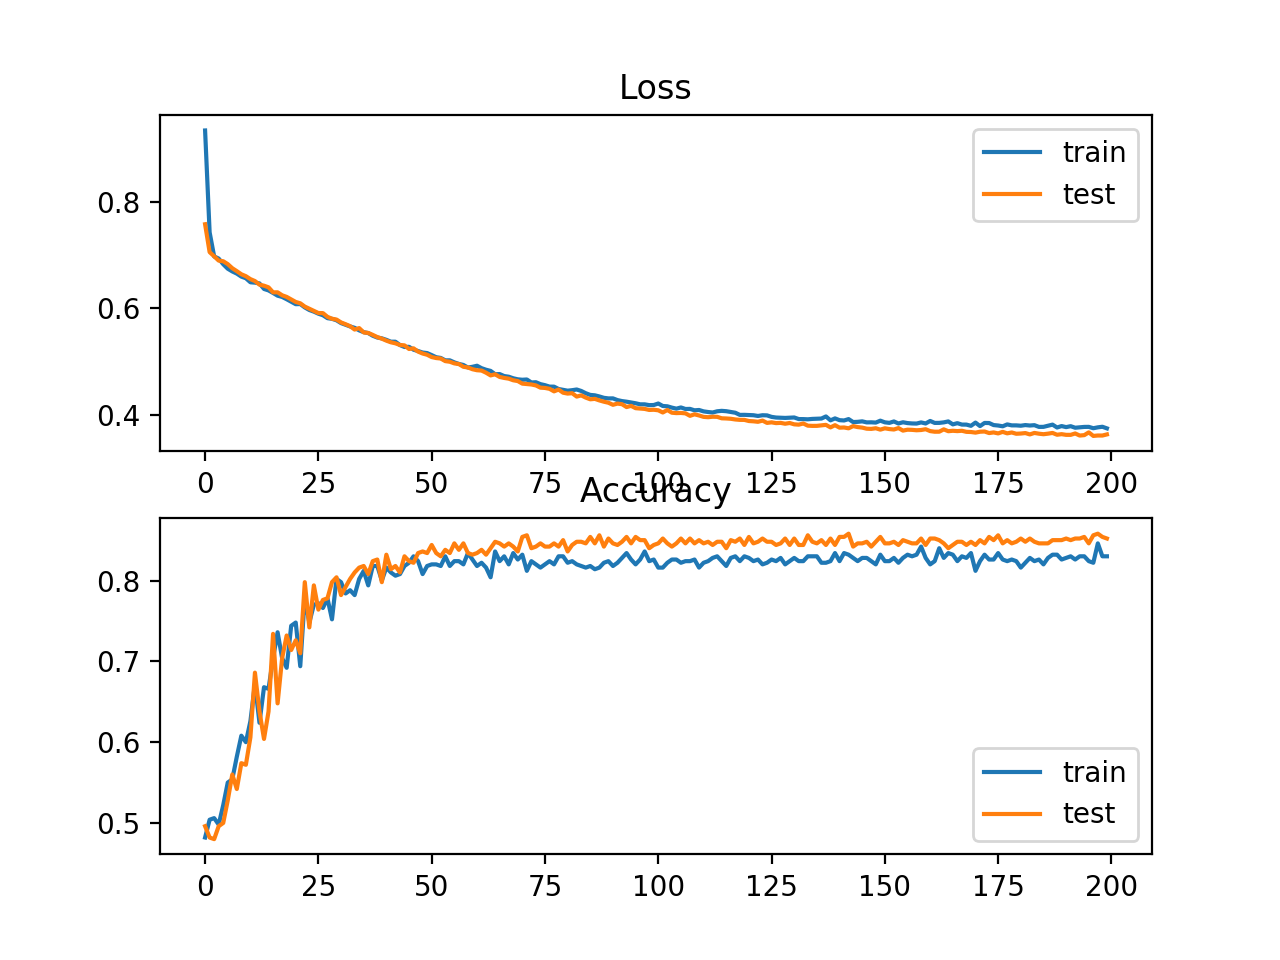 <b>Figure 12: Line Plots of Cross Entropy Loss and Classification Accuracy over Training Epochs on the Two Circles Binary Classification Problem</b>